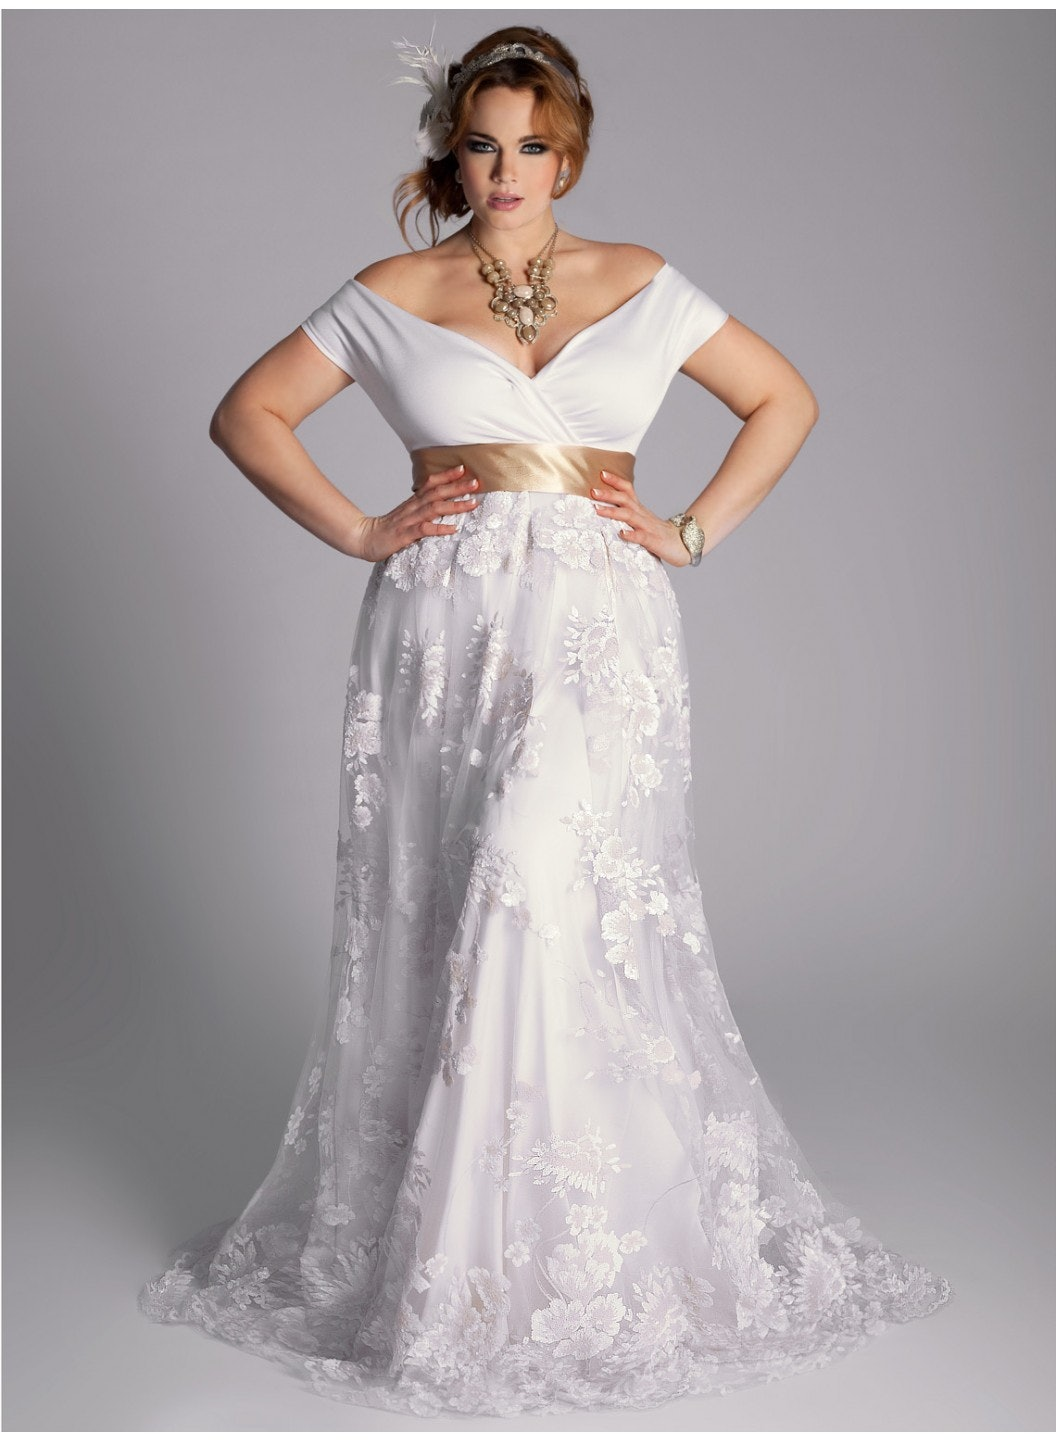 25 stunning plus size wedding dresses for every style of nuptial 25 stunning plus size wedding dresses for every style of nuptial affair junglespirit Images